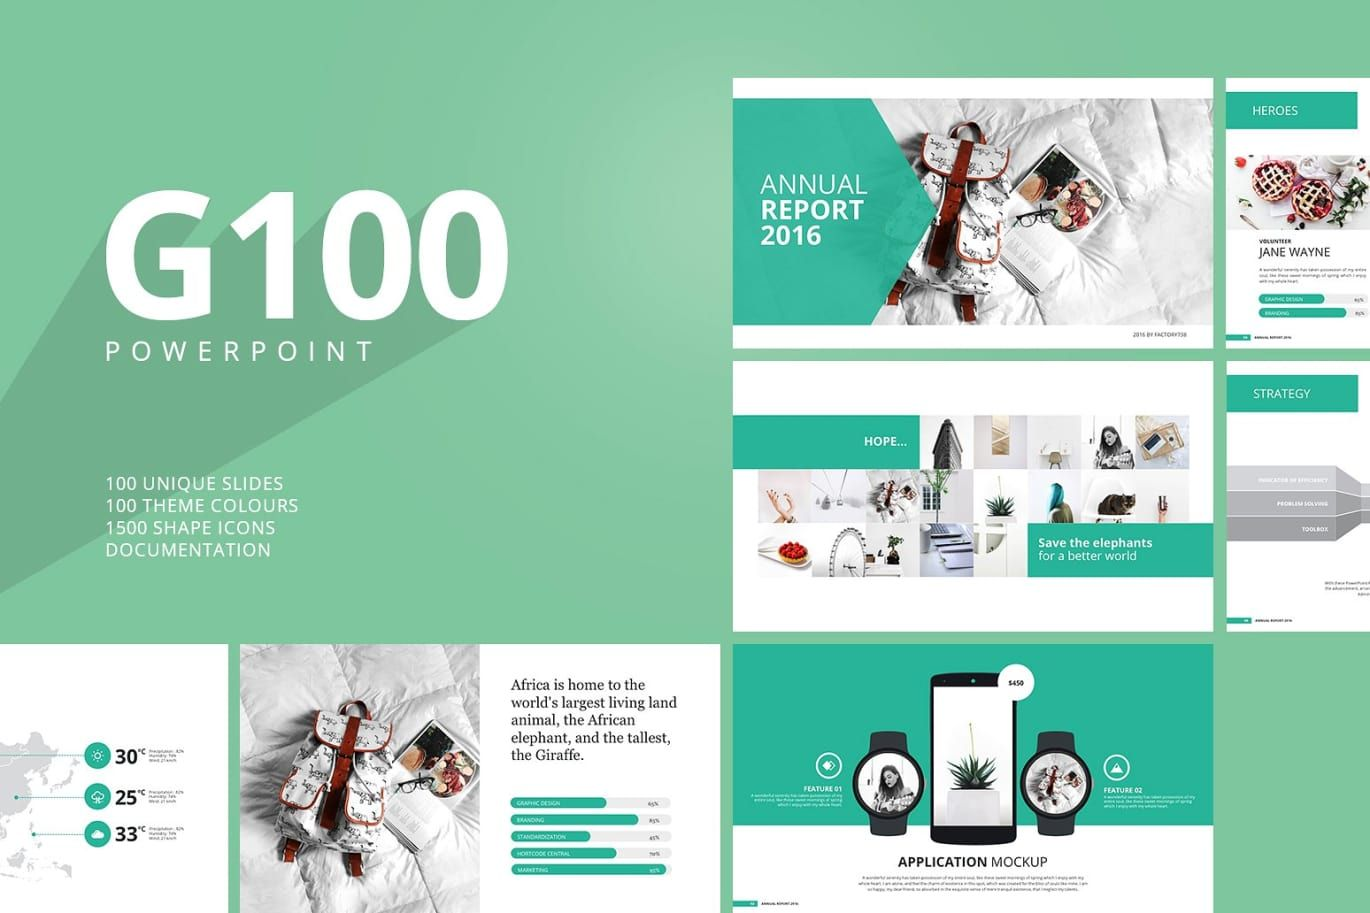 G100 magazine powerpoint template by factory738 on envato elements g100 magazine powerpoint template by factory738 on envato elements alramifo Gallery